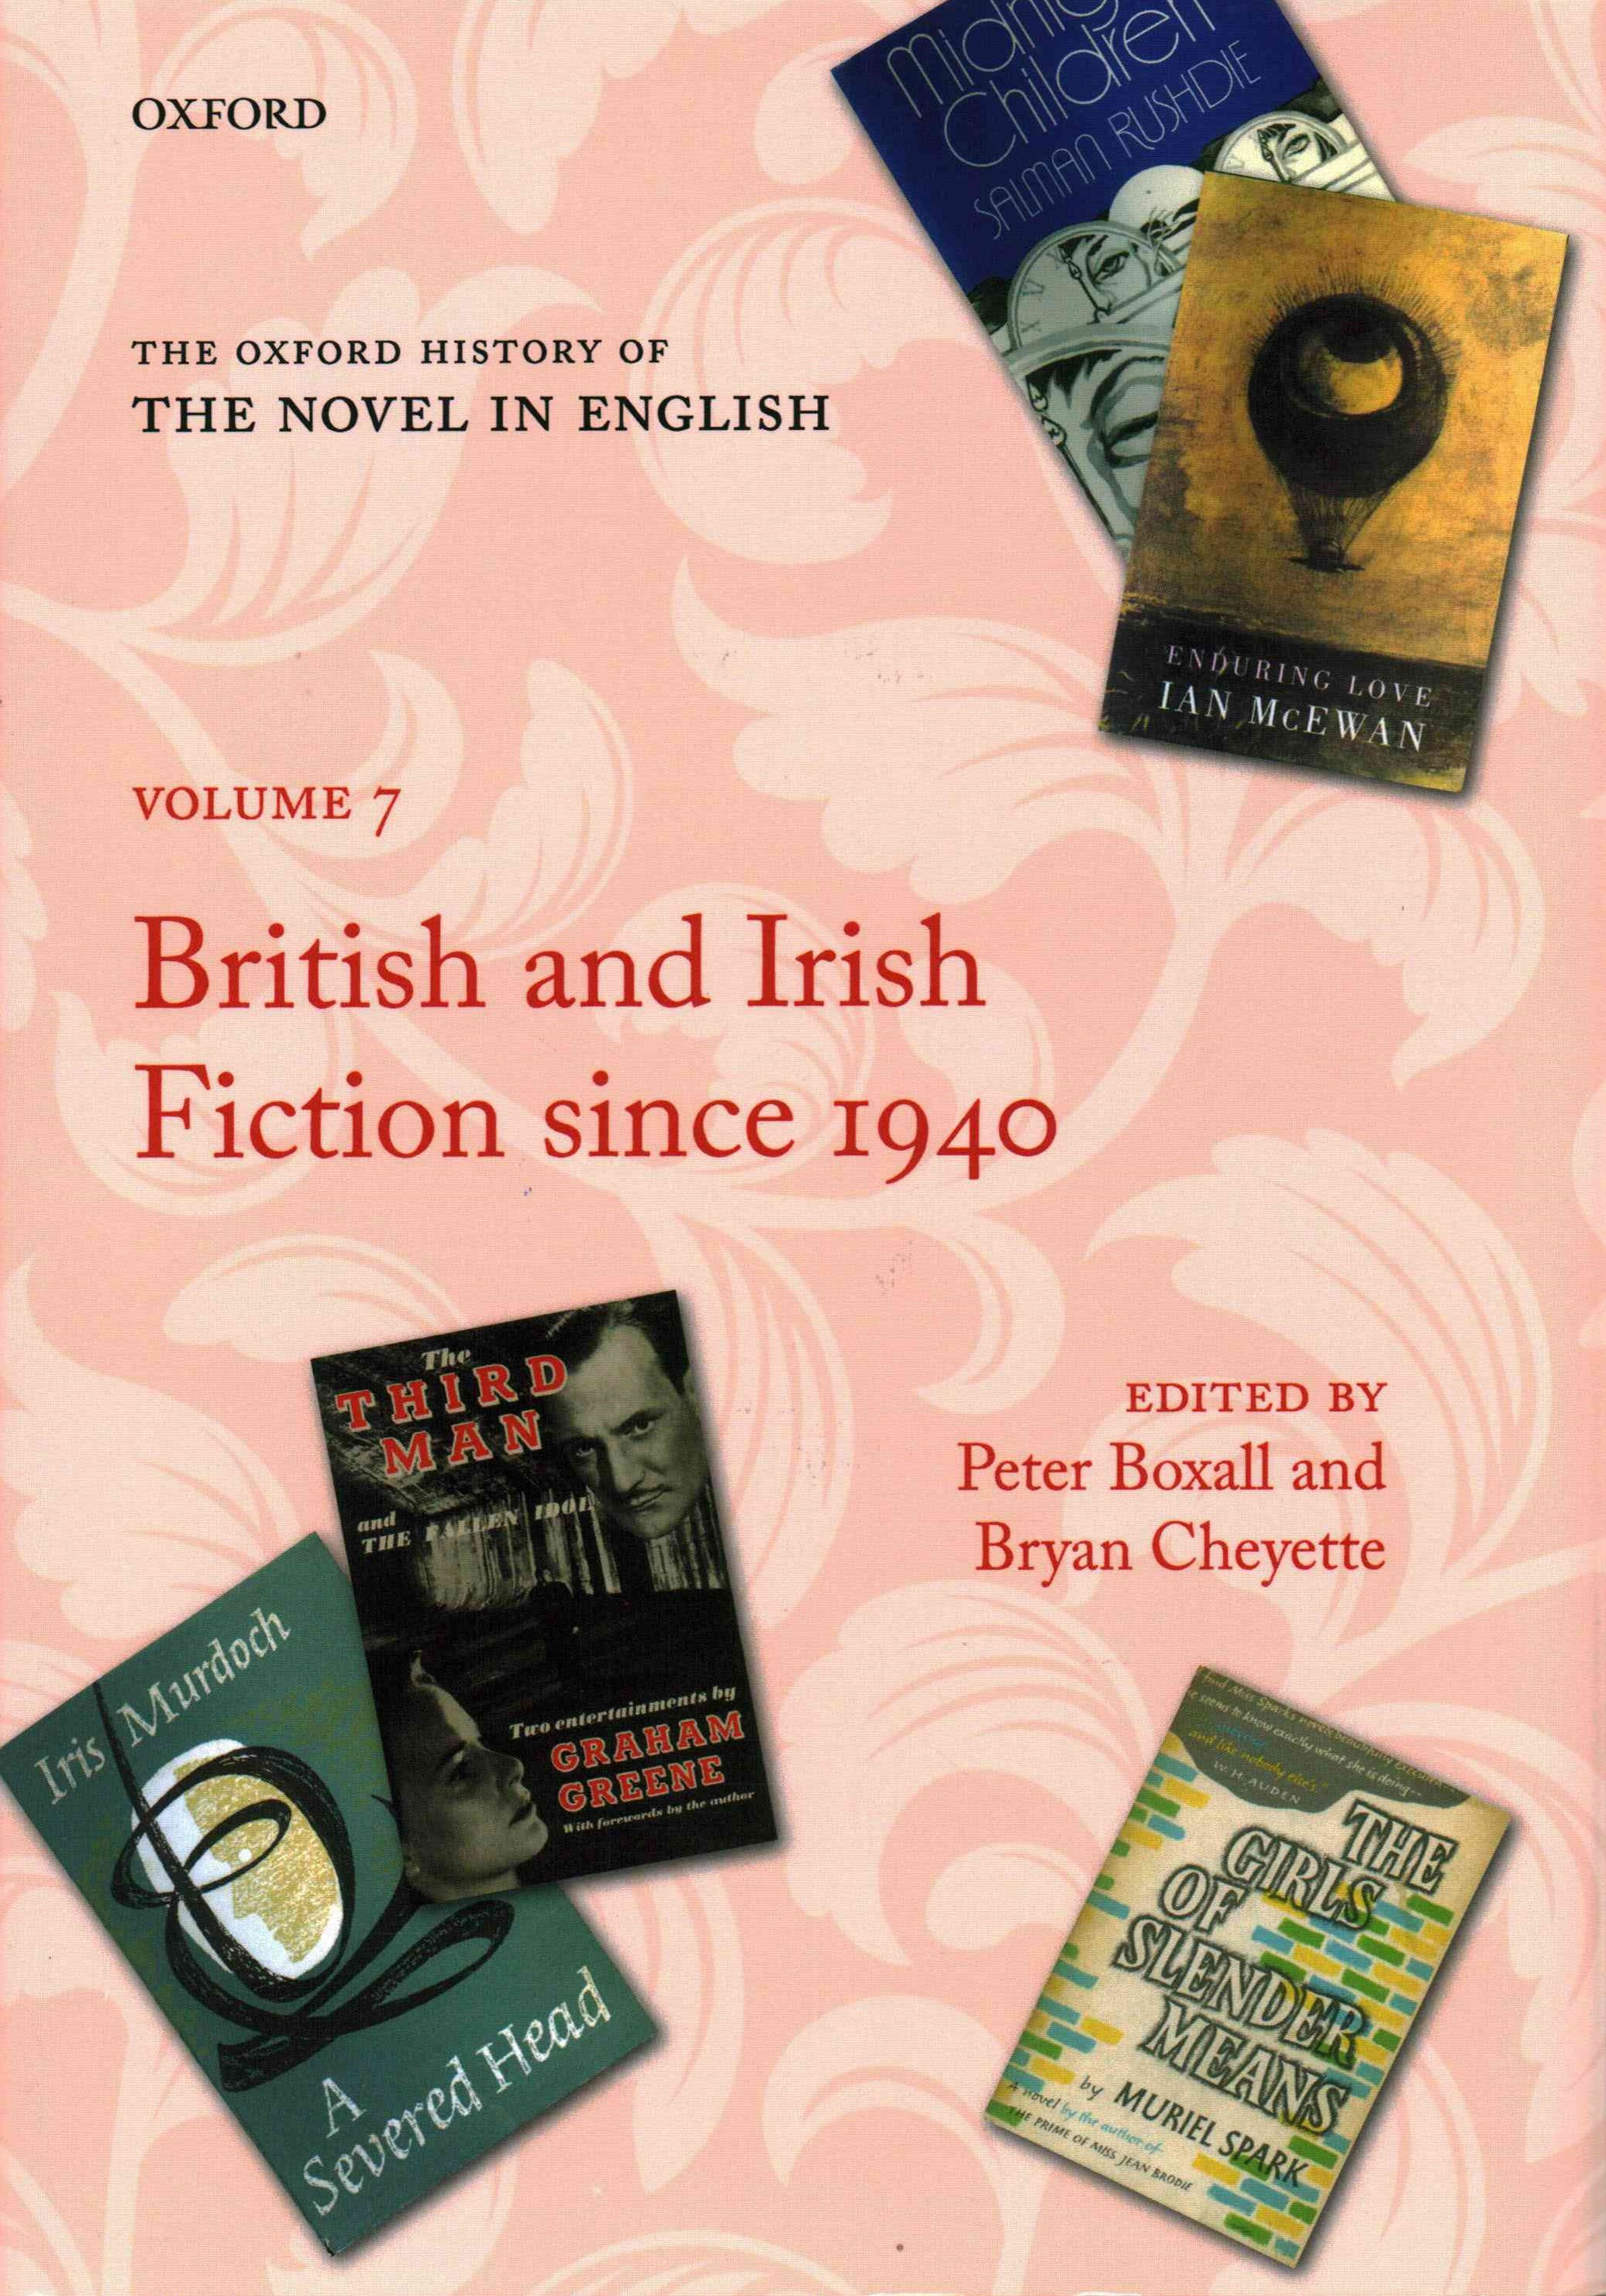 The Oxford History of the Novel in English: Volume 7